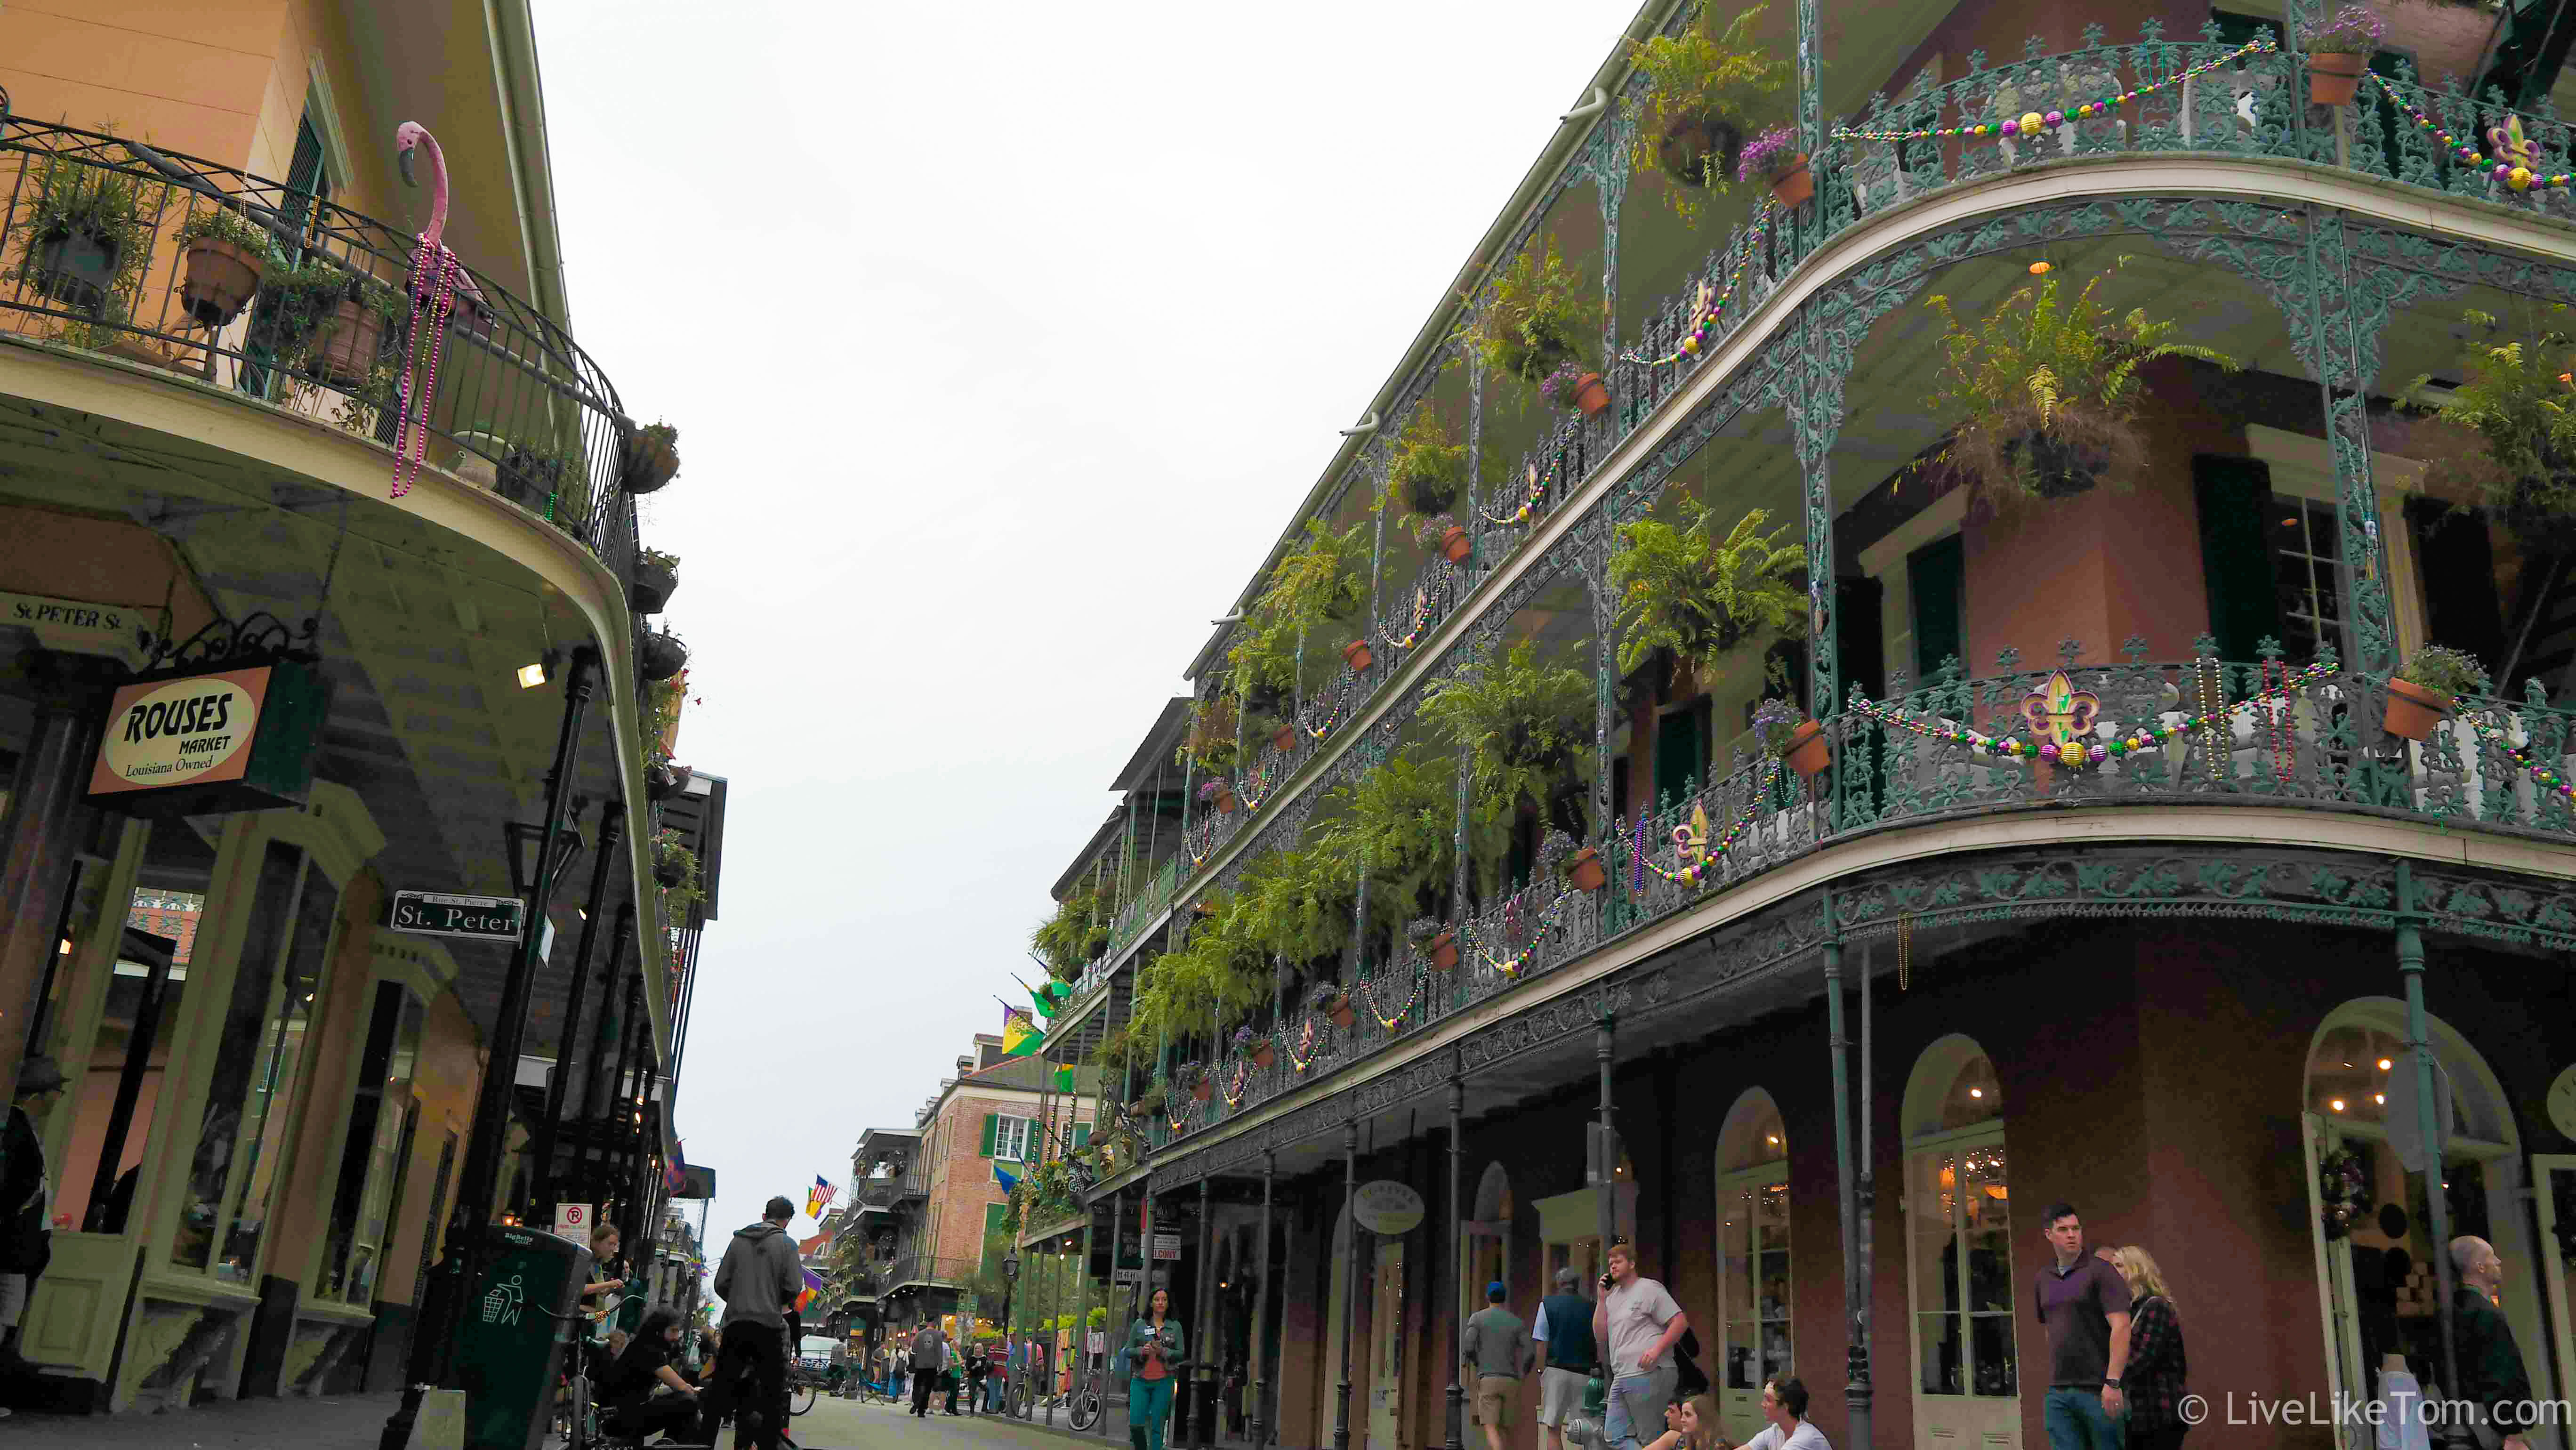 green balconies in french quarter new orleans